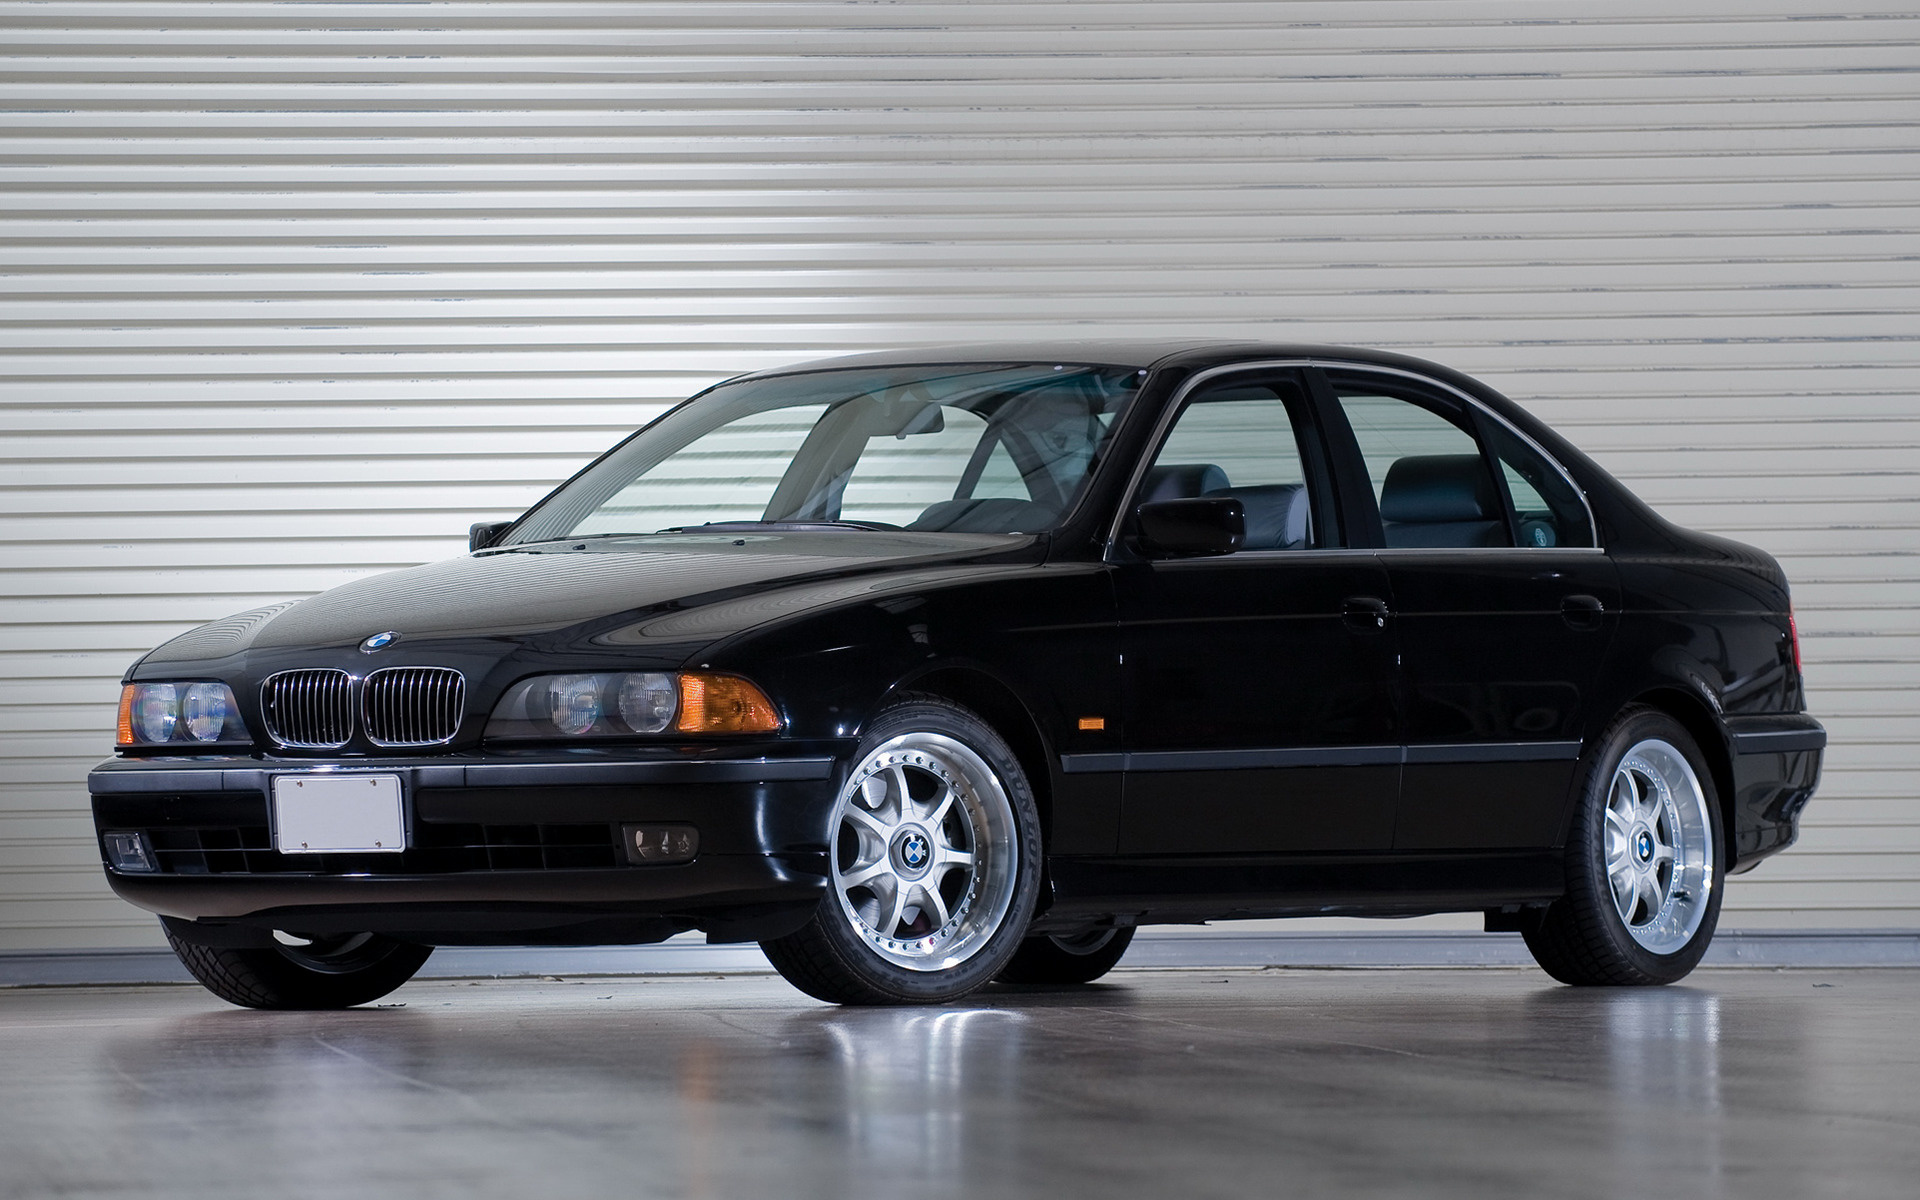 BMW 5 series 540i 1996 photo - 9